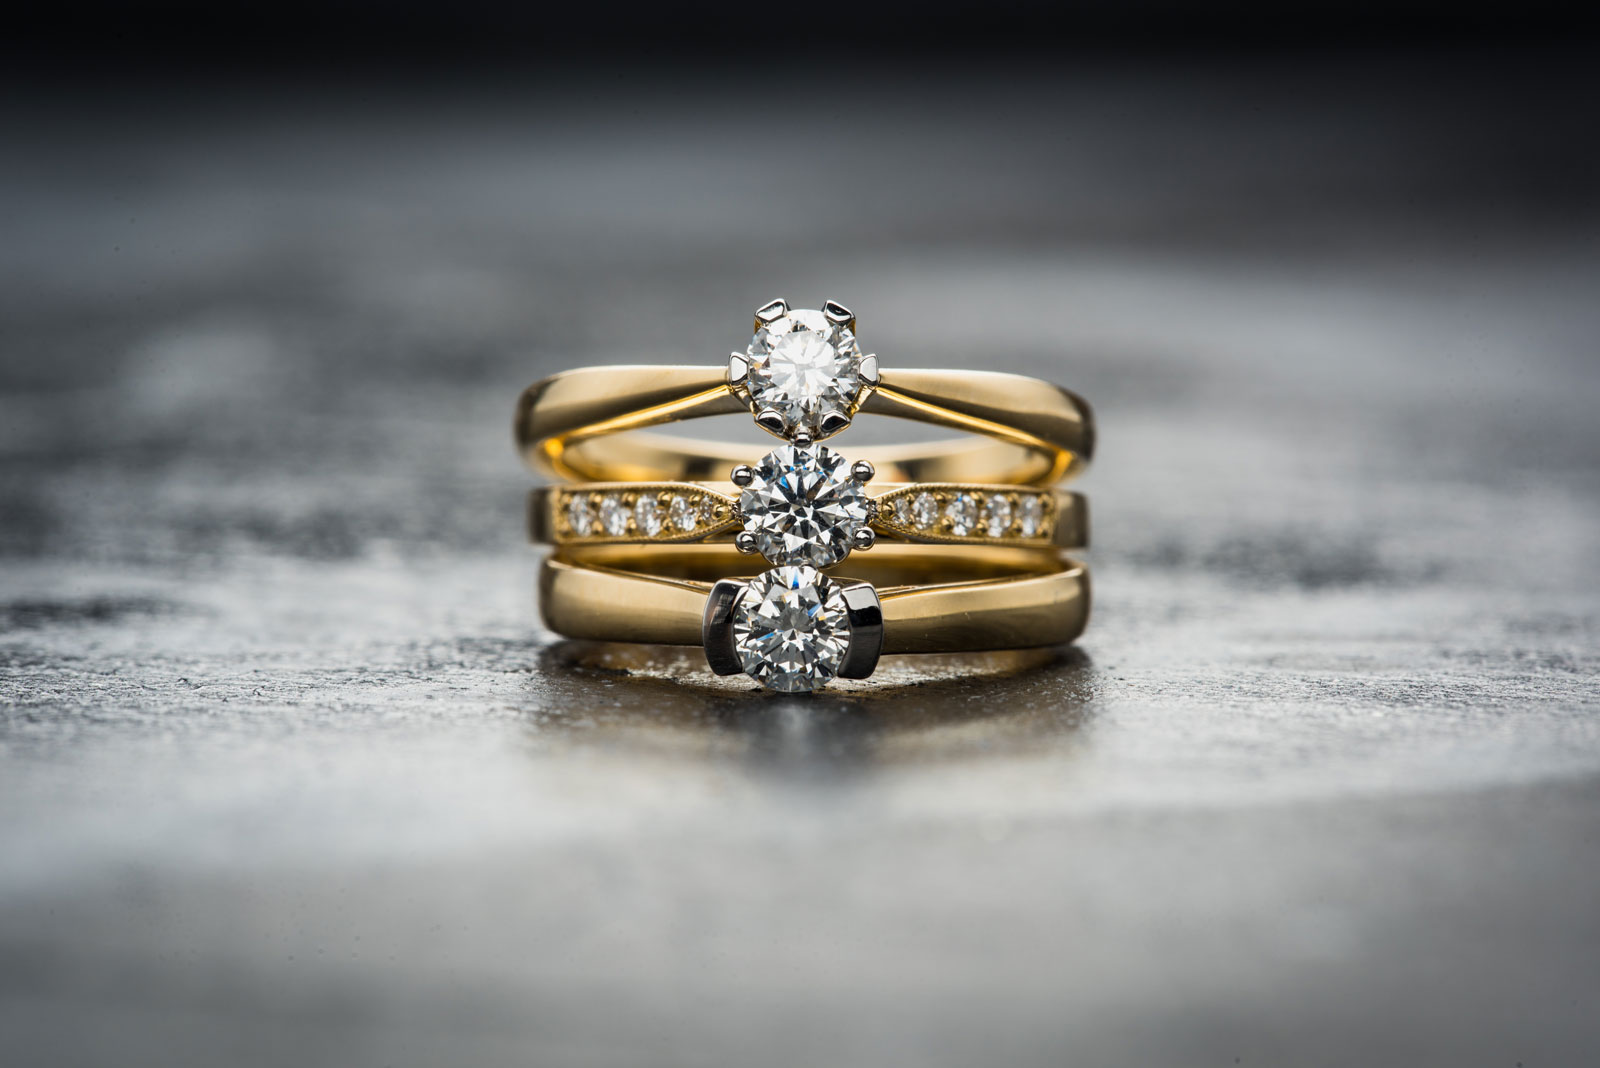 Ring | Does Costume Jewelry Really Turn Your Skin Green?